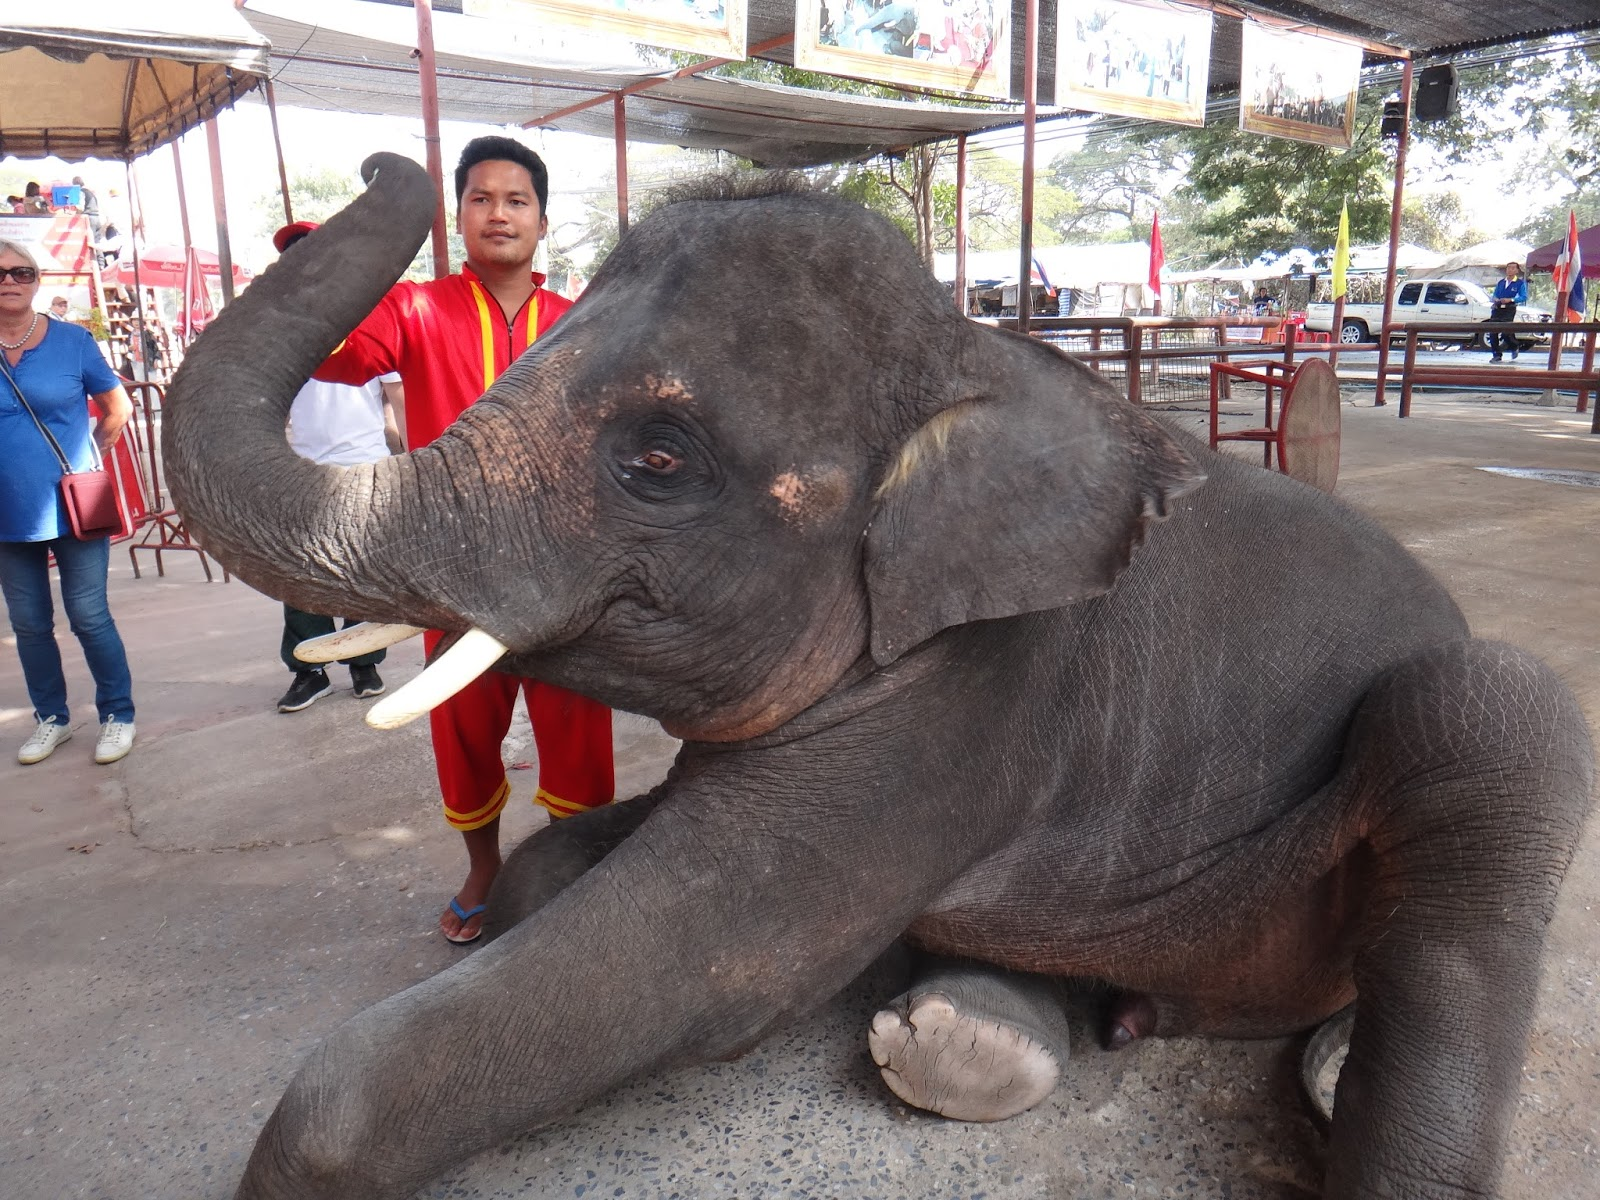 We Met This Cute Baby Elephant While On Our Day Tour Of Ayutthaya From Bangkok Thailand He Was Wandering Around The Entrance To One Temples